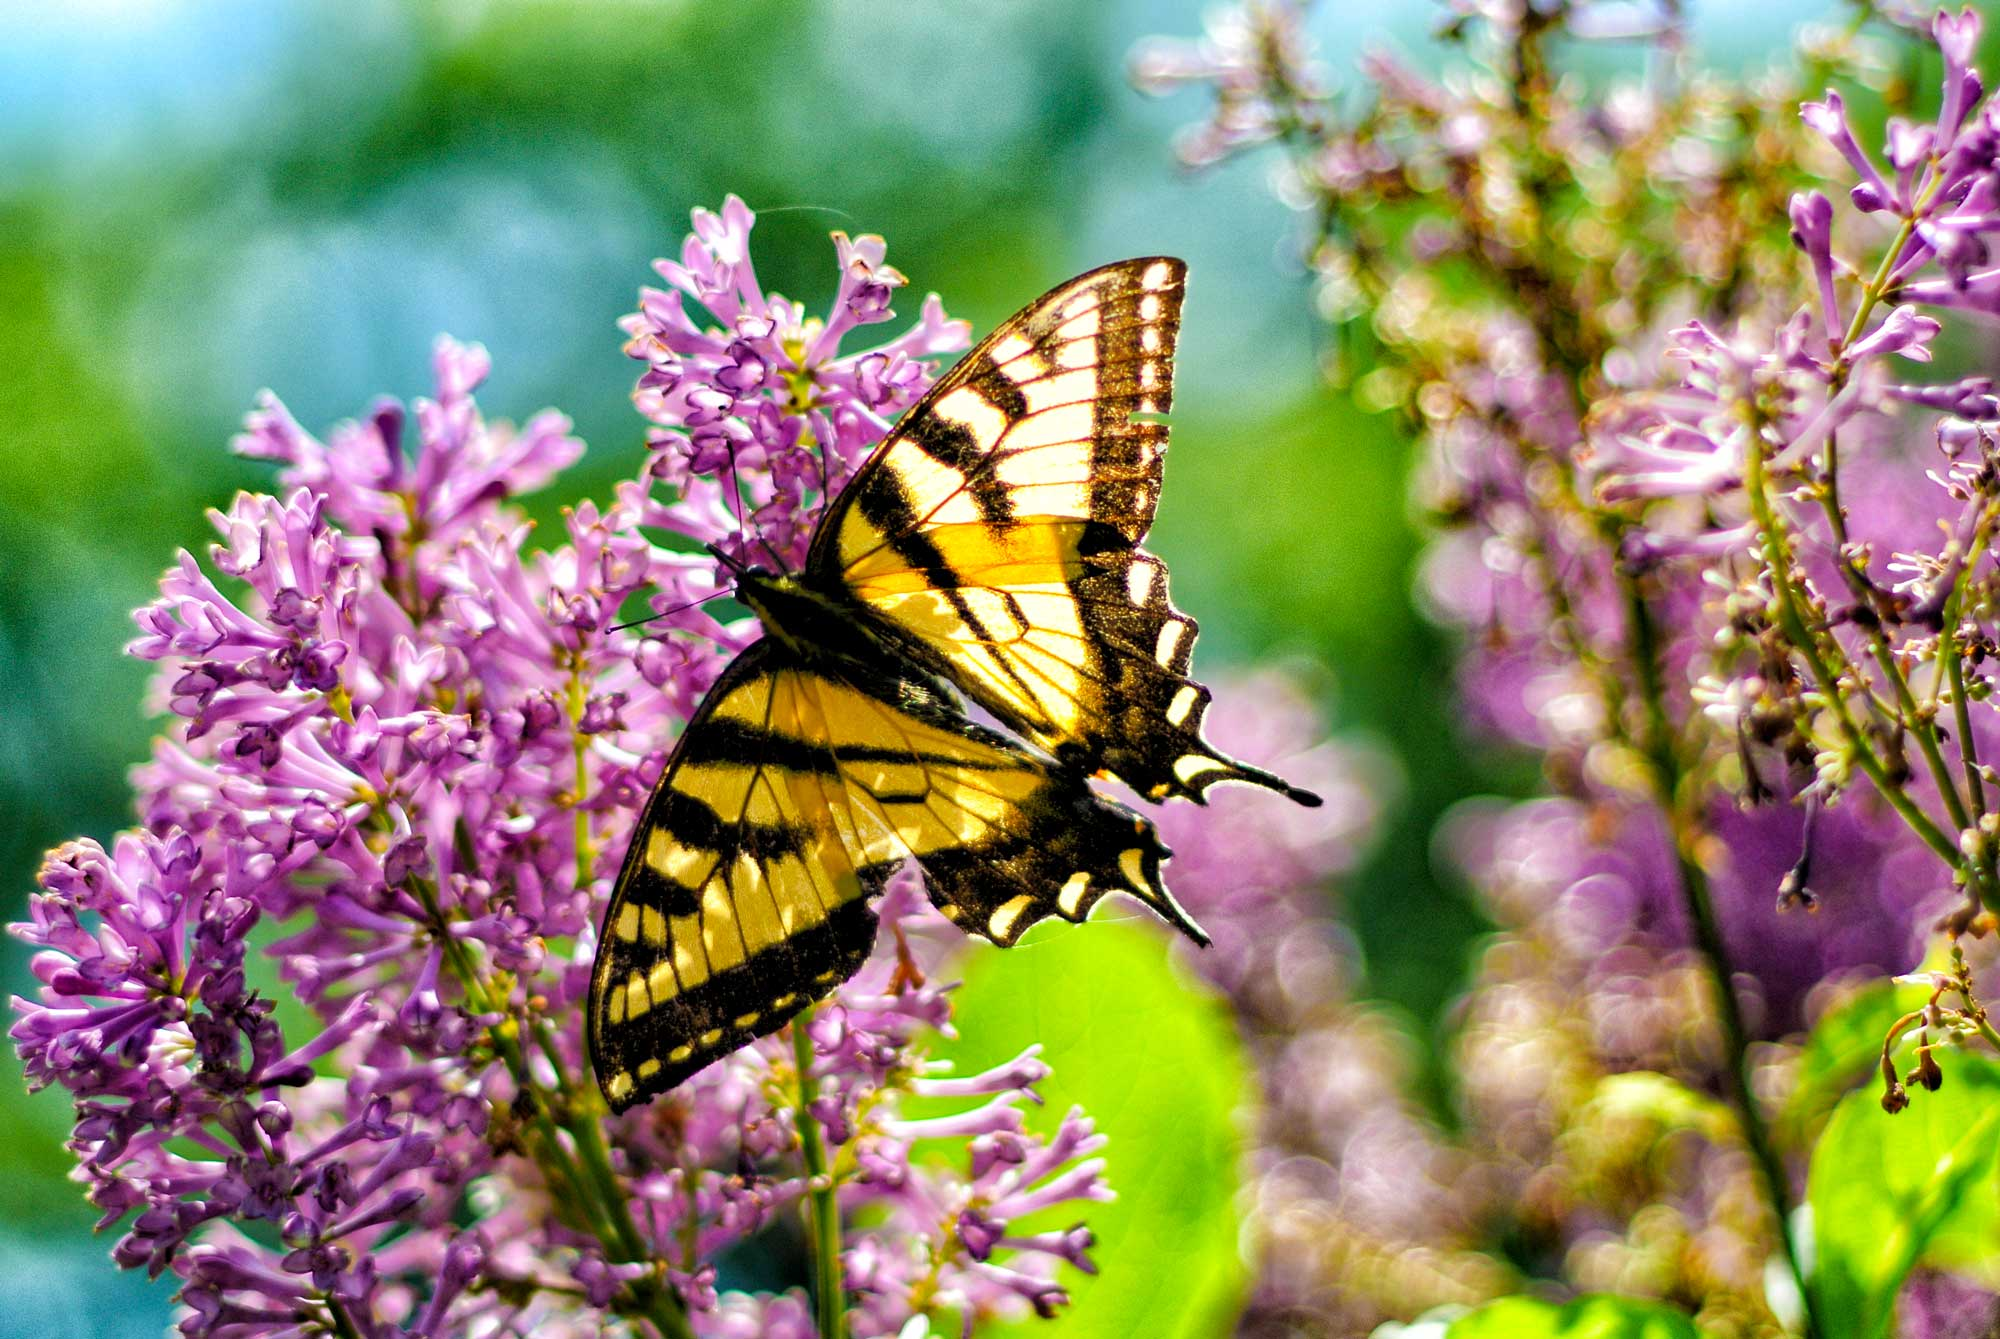 Eastern Tiger Swallowtail on purple lilac